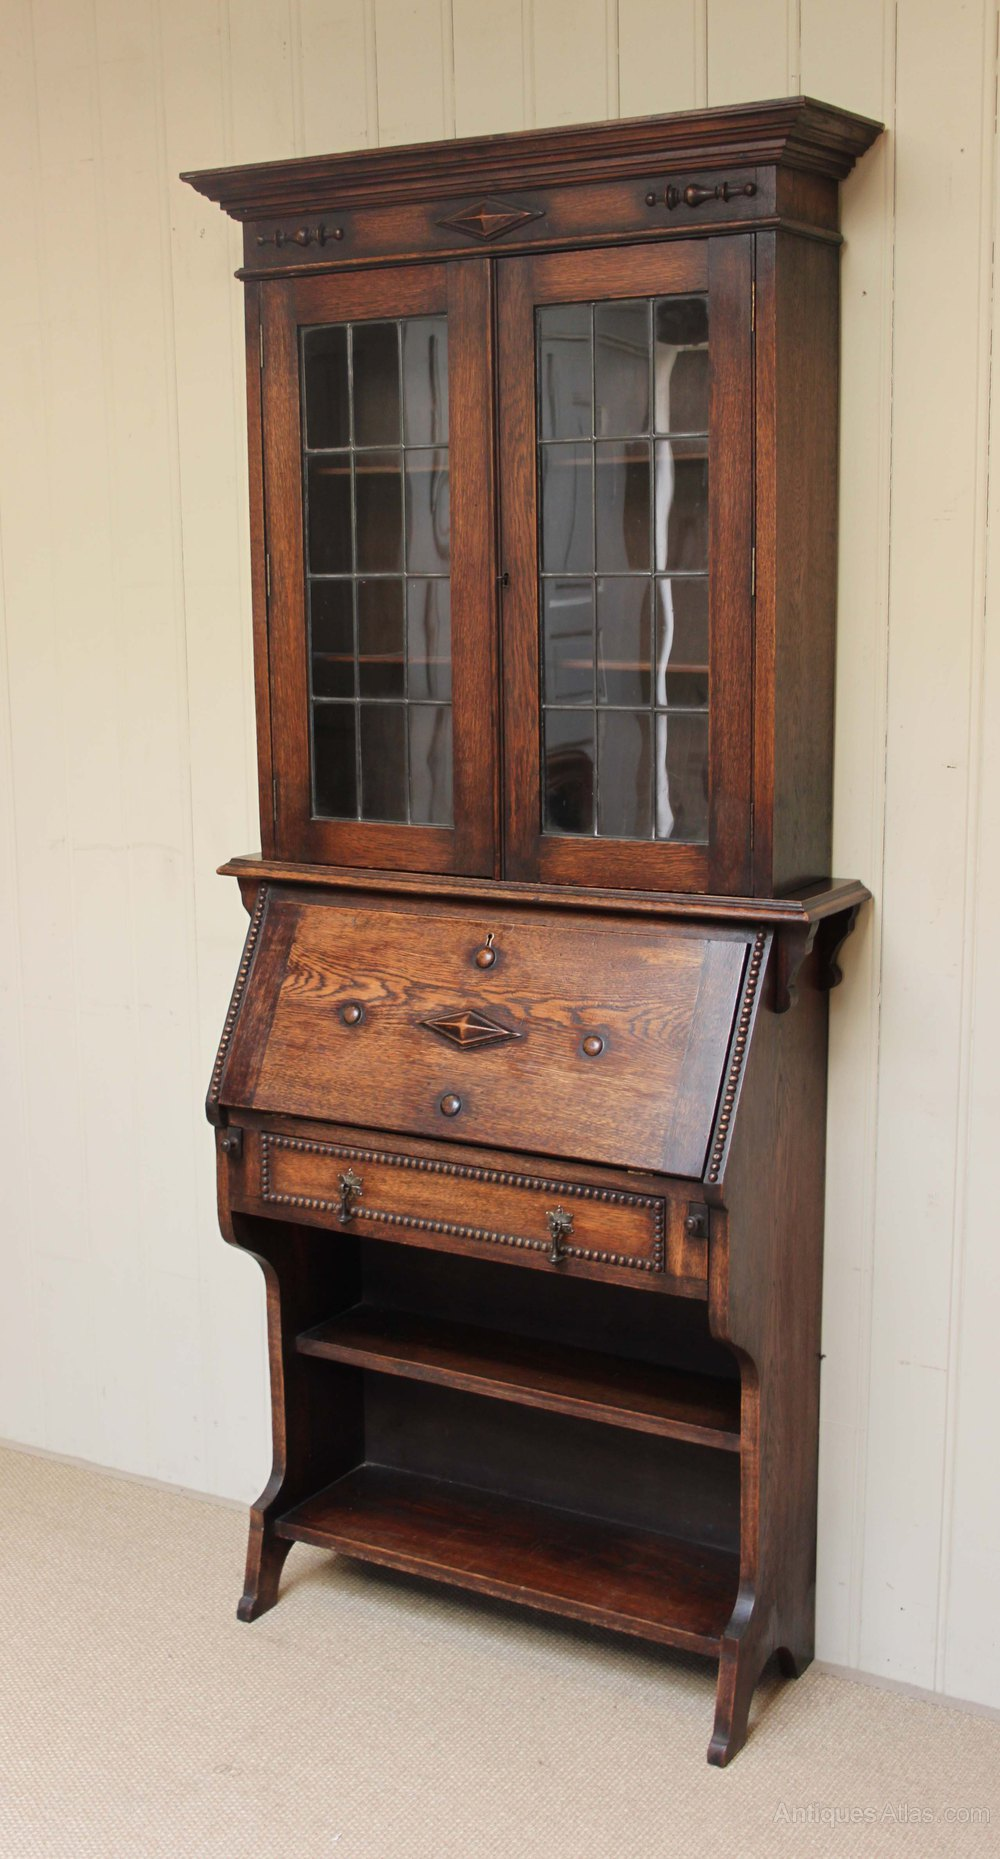 oak bureau bookcase antiques atlas. Black Bedroom Furniture Sets. Home Design Ideas